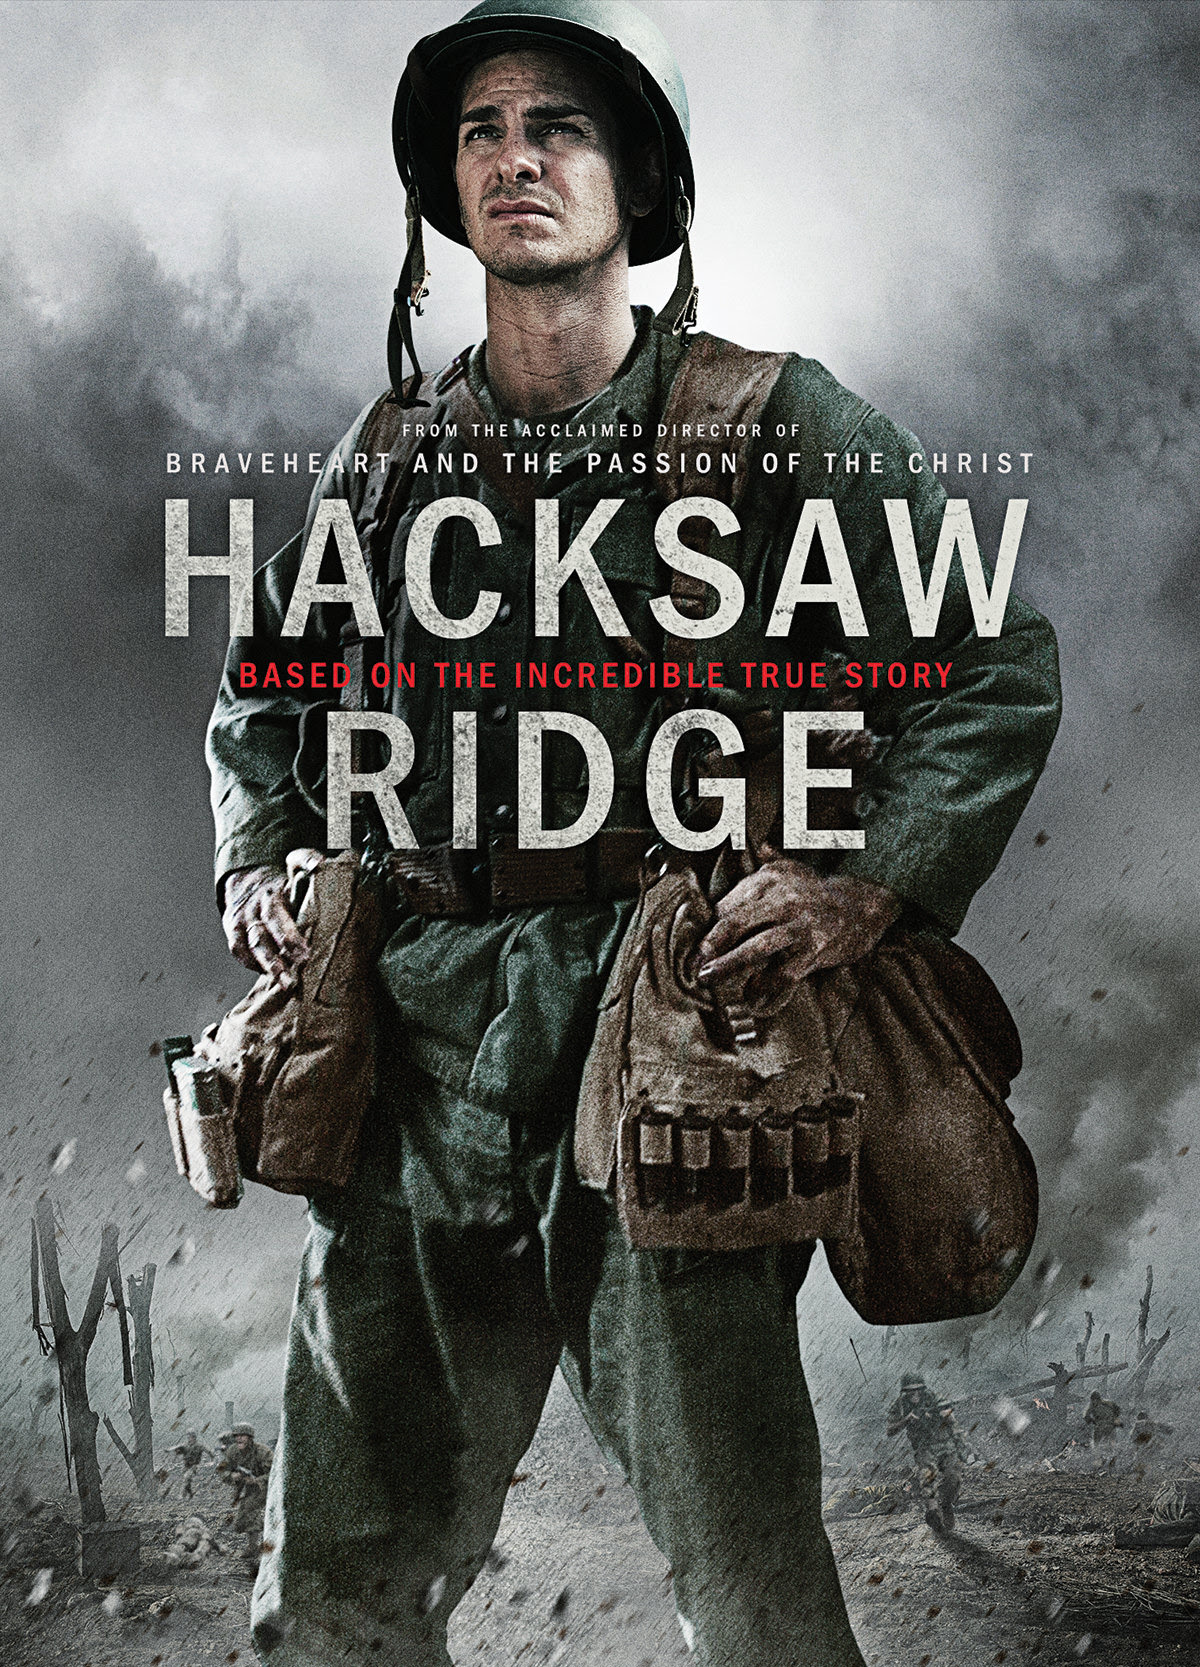 Hacksaw Ridge 2016 Full Movie Blu Ray With Bangla Subtitle 720p 700mb Gdrive Download Southfreak Bangla Subtitle Hindi Dubbed Khatrimaza 9xmovies World4ufree Downloadhub Jalshamoviez